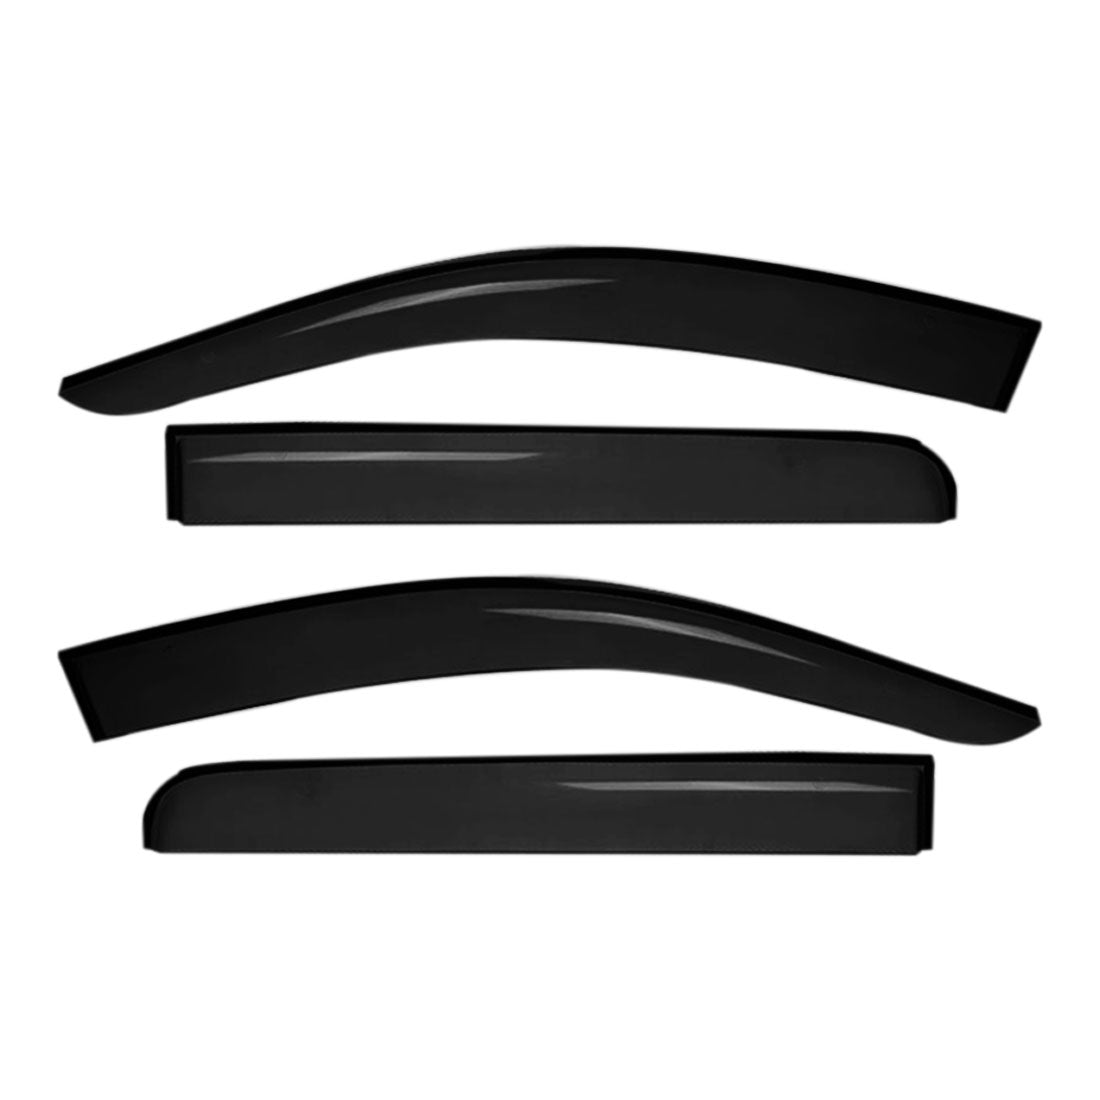 Weather shields Door Window Visors Weathershields Guard For Toyota Kluger 2014 - 2020